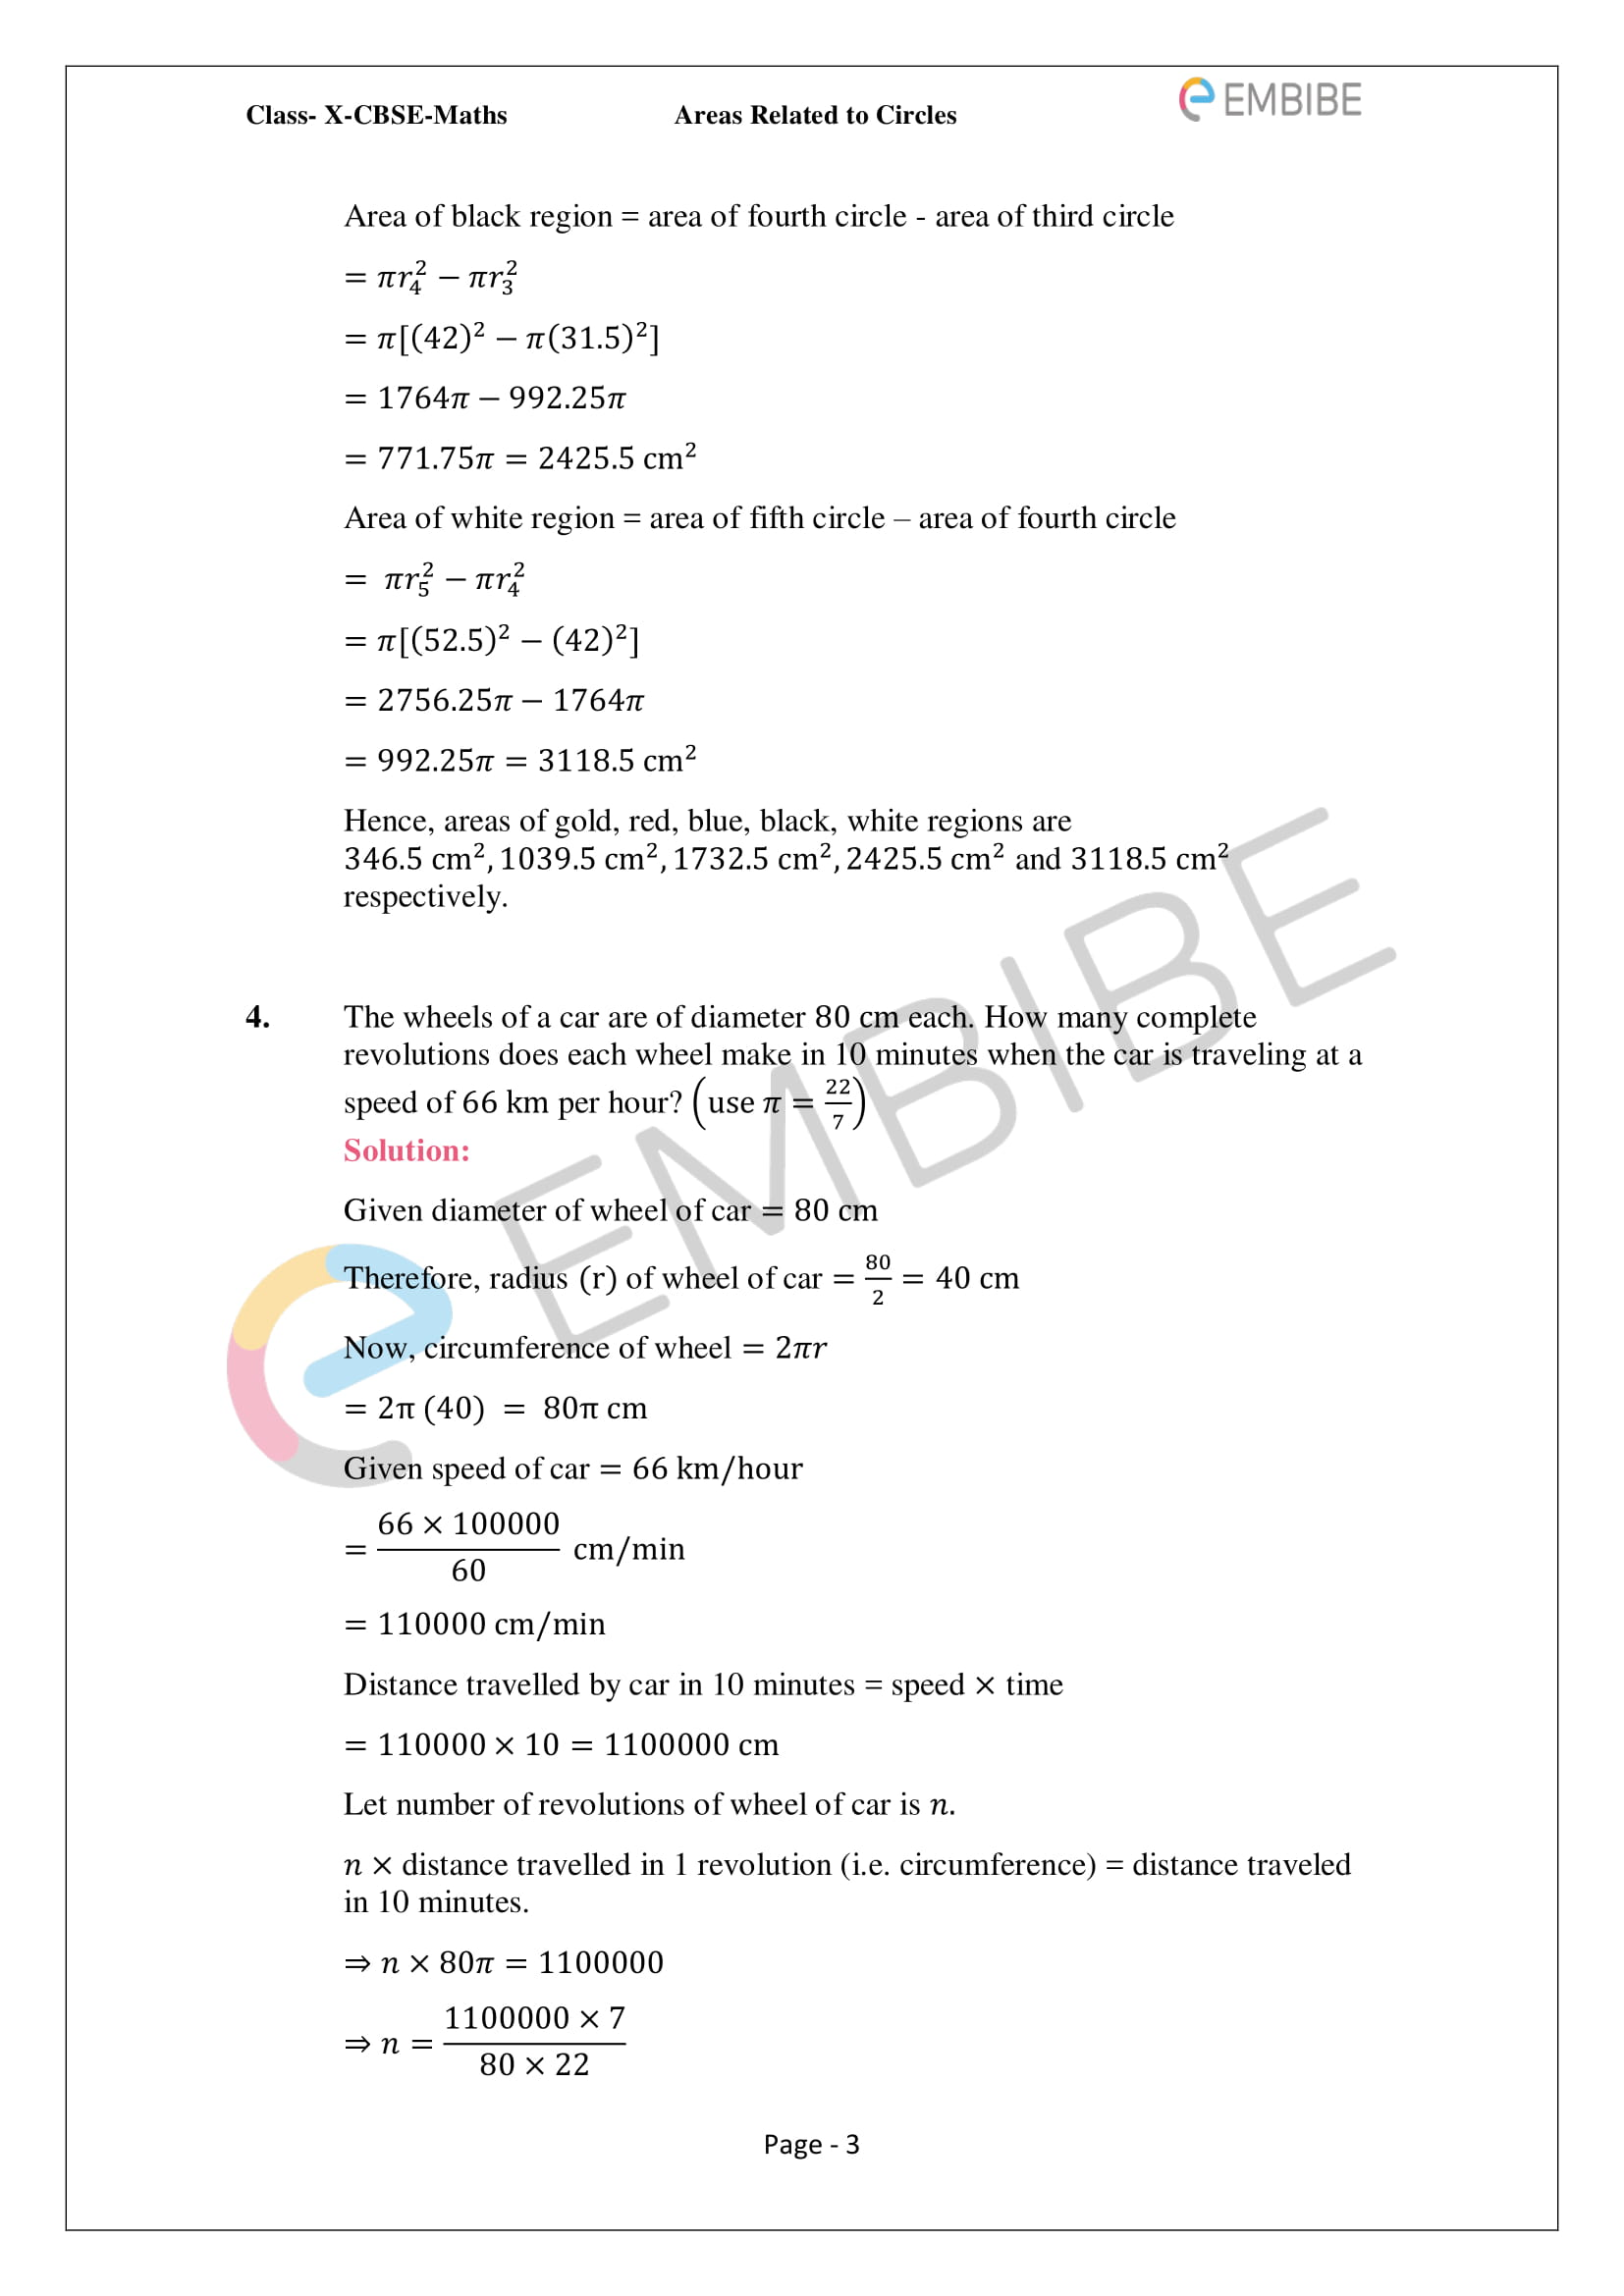 NCERT Solutions For Class 10 Maths Chapter 12: Areas Related